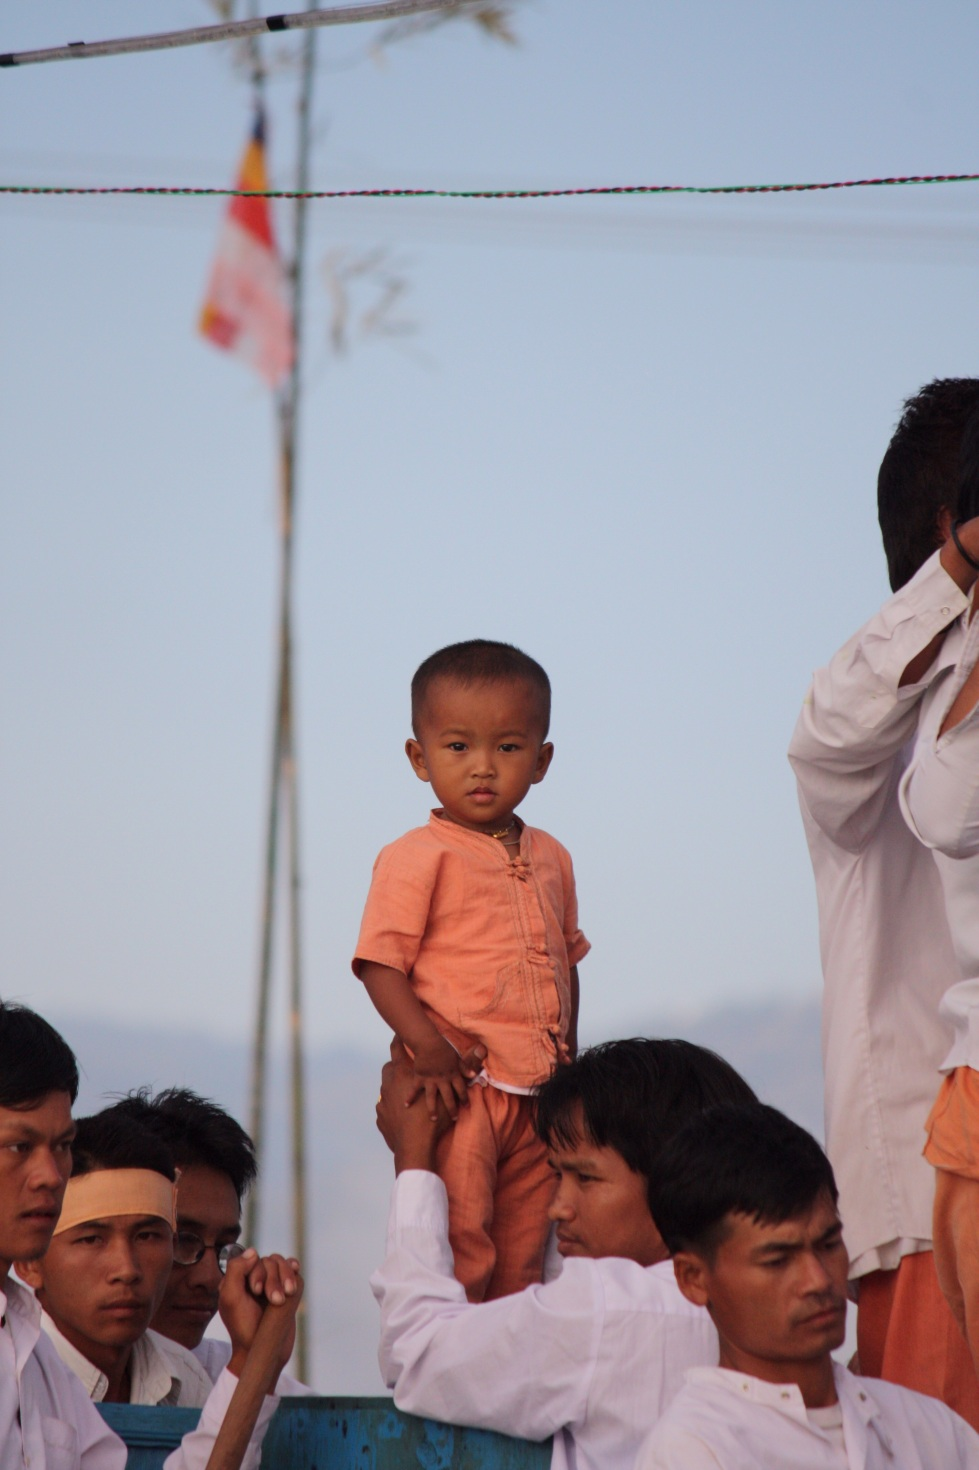 Baby Boy taking part in Phaung Daw Oo Pagoda Festival, Inle Lake, October 2012